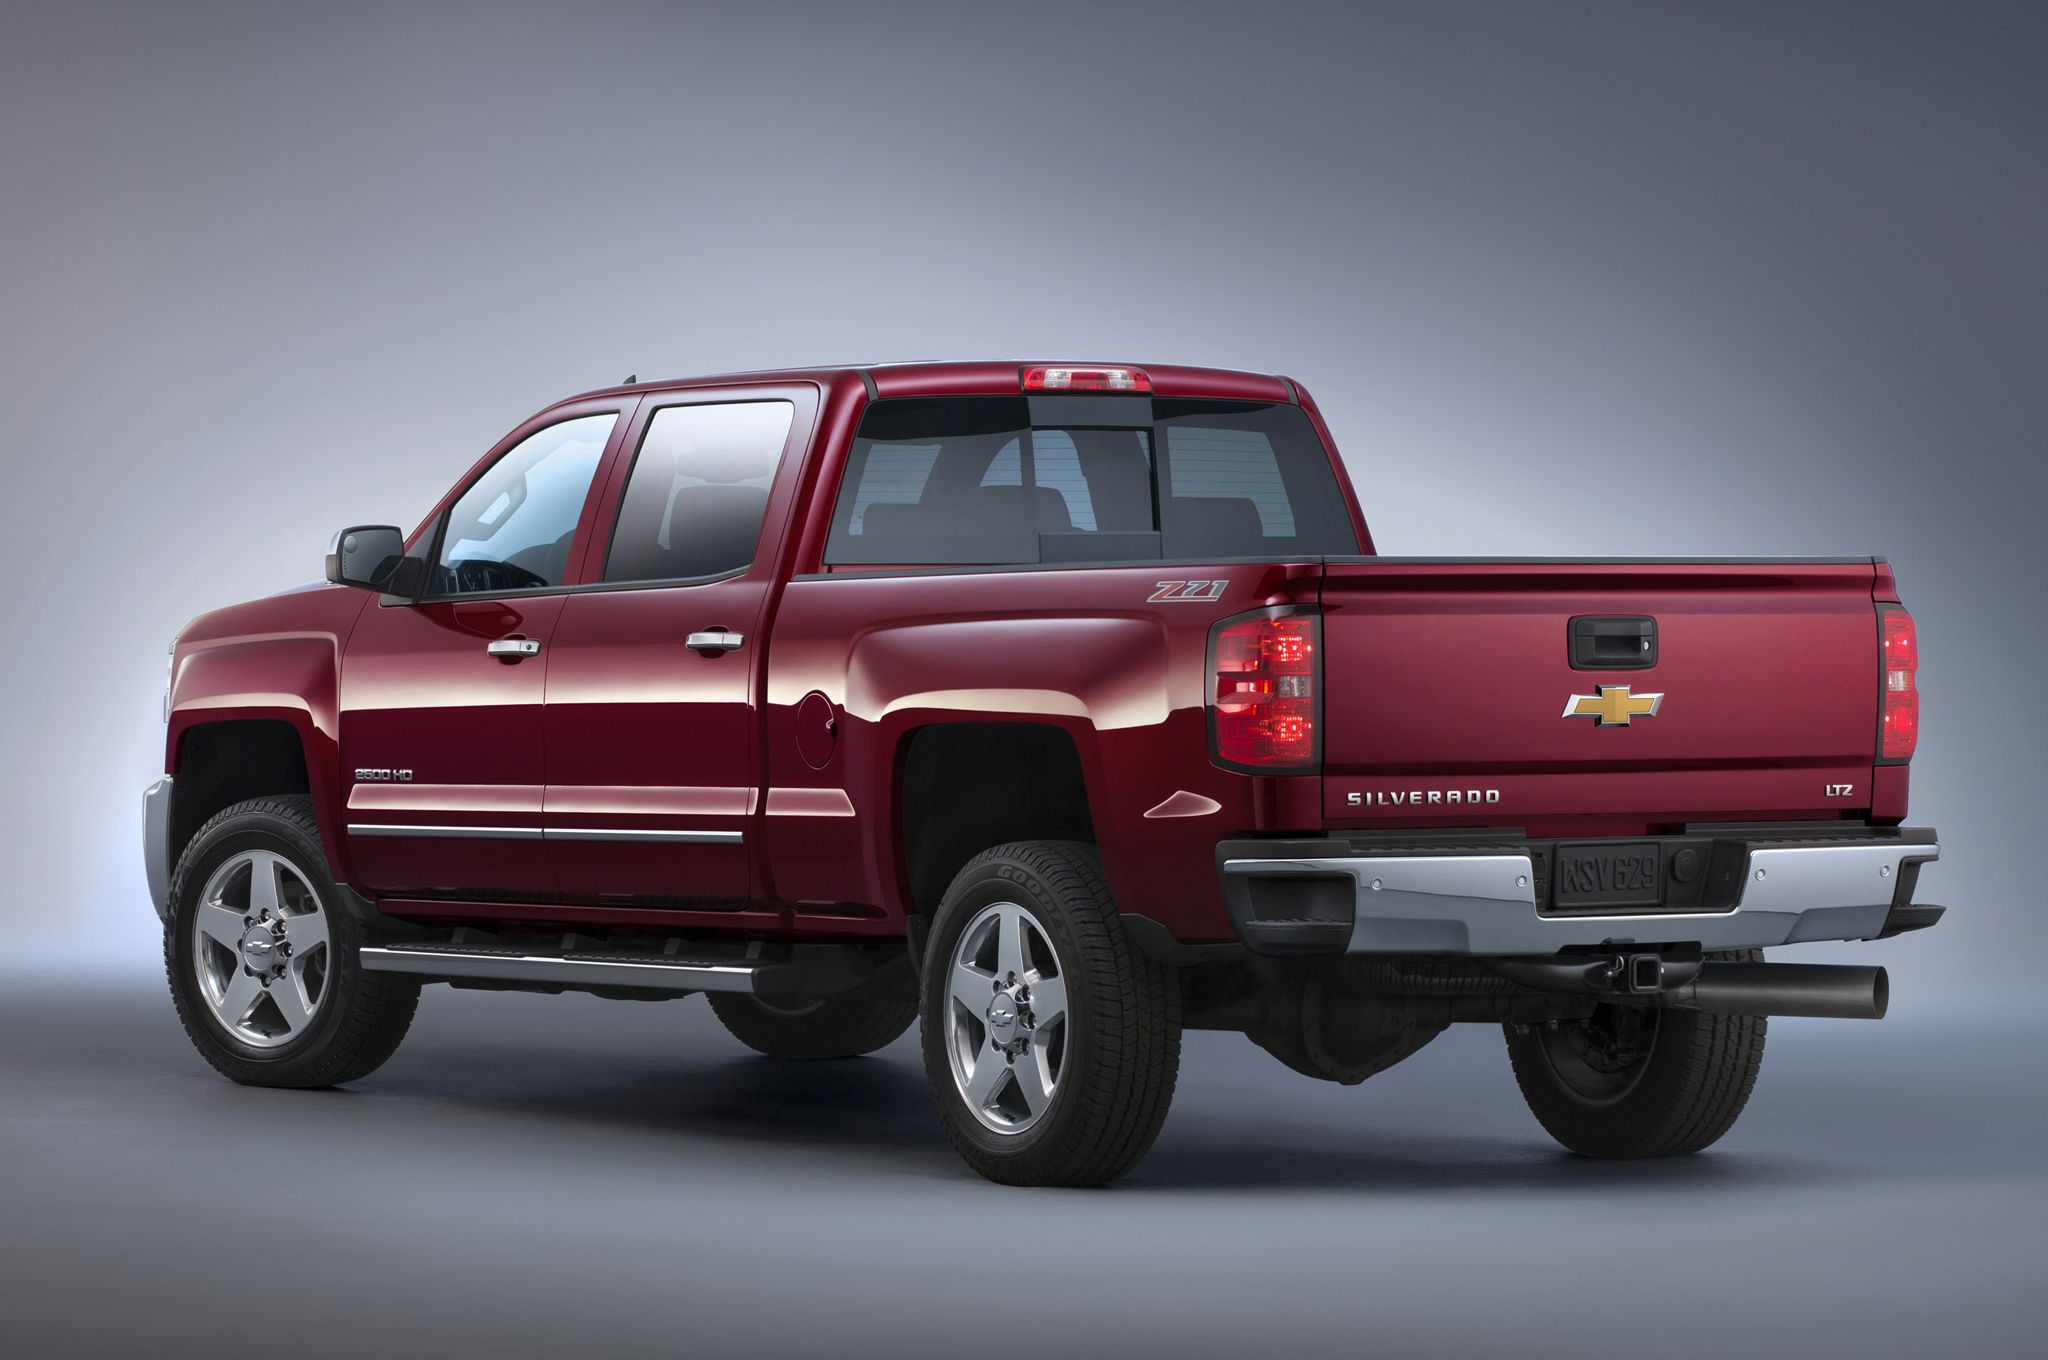 2015 Chevrolet Silverado 2500hd Ltz Z71 Rear View Chevrolet